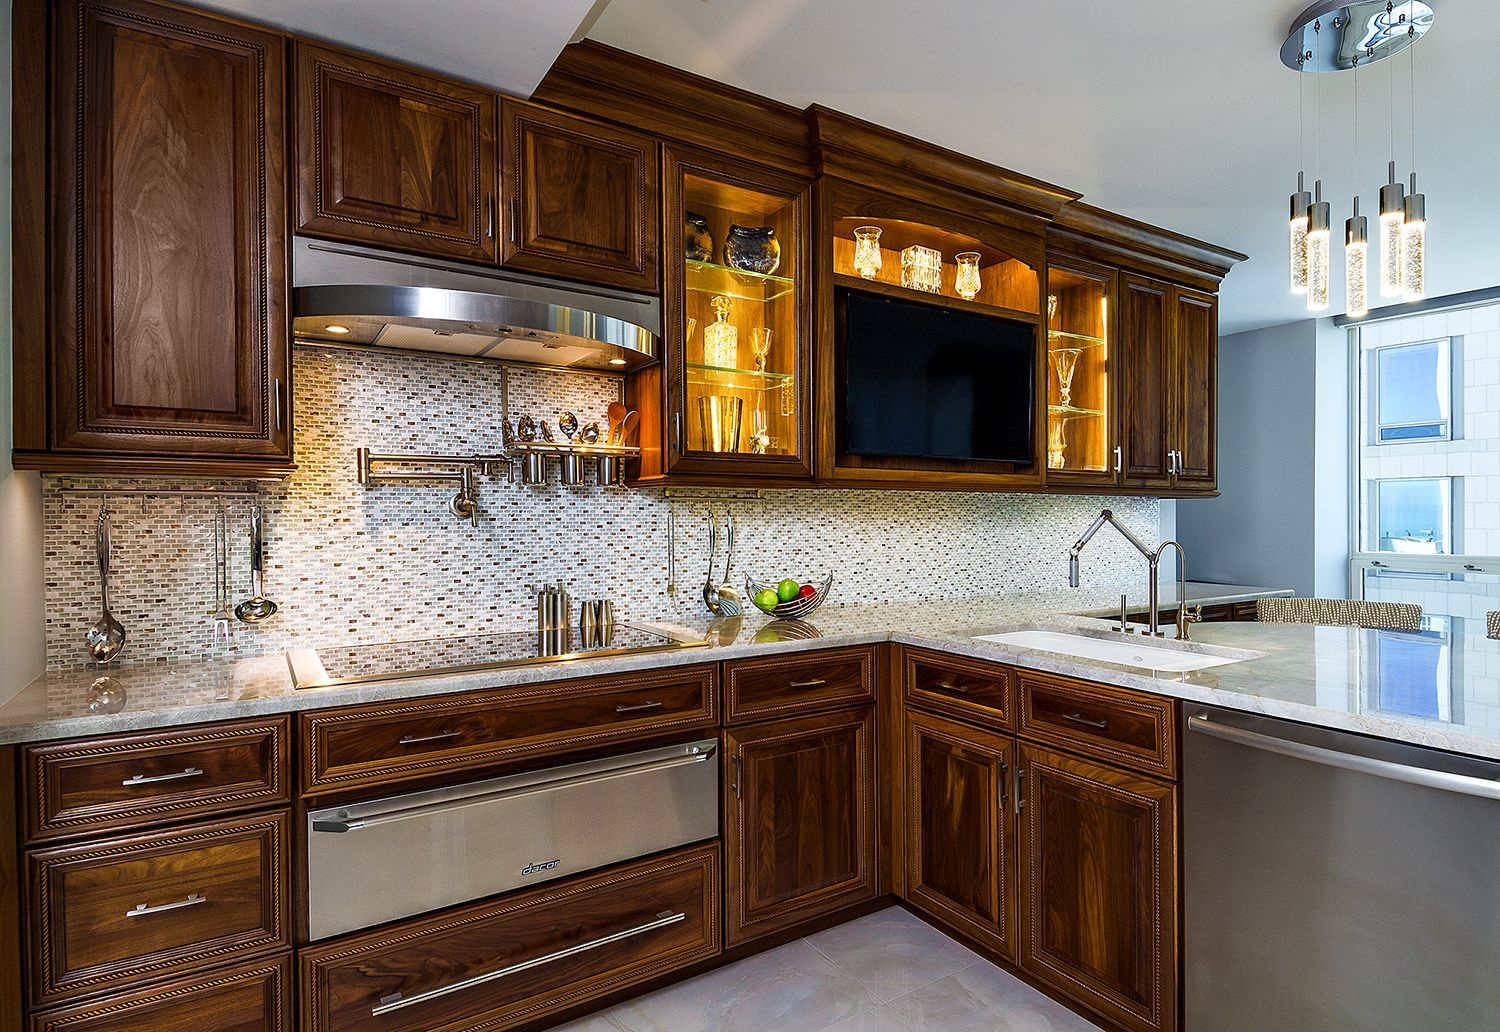 Custom Walnut Cabinetry By Amber Golob And Marta Decapri Of Studioarmadi Walnut Kitchen Cabinets Interior Design Chicago Custom Cabinetry